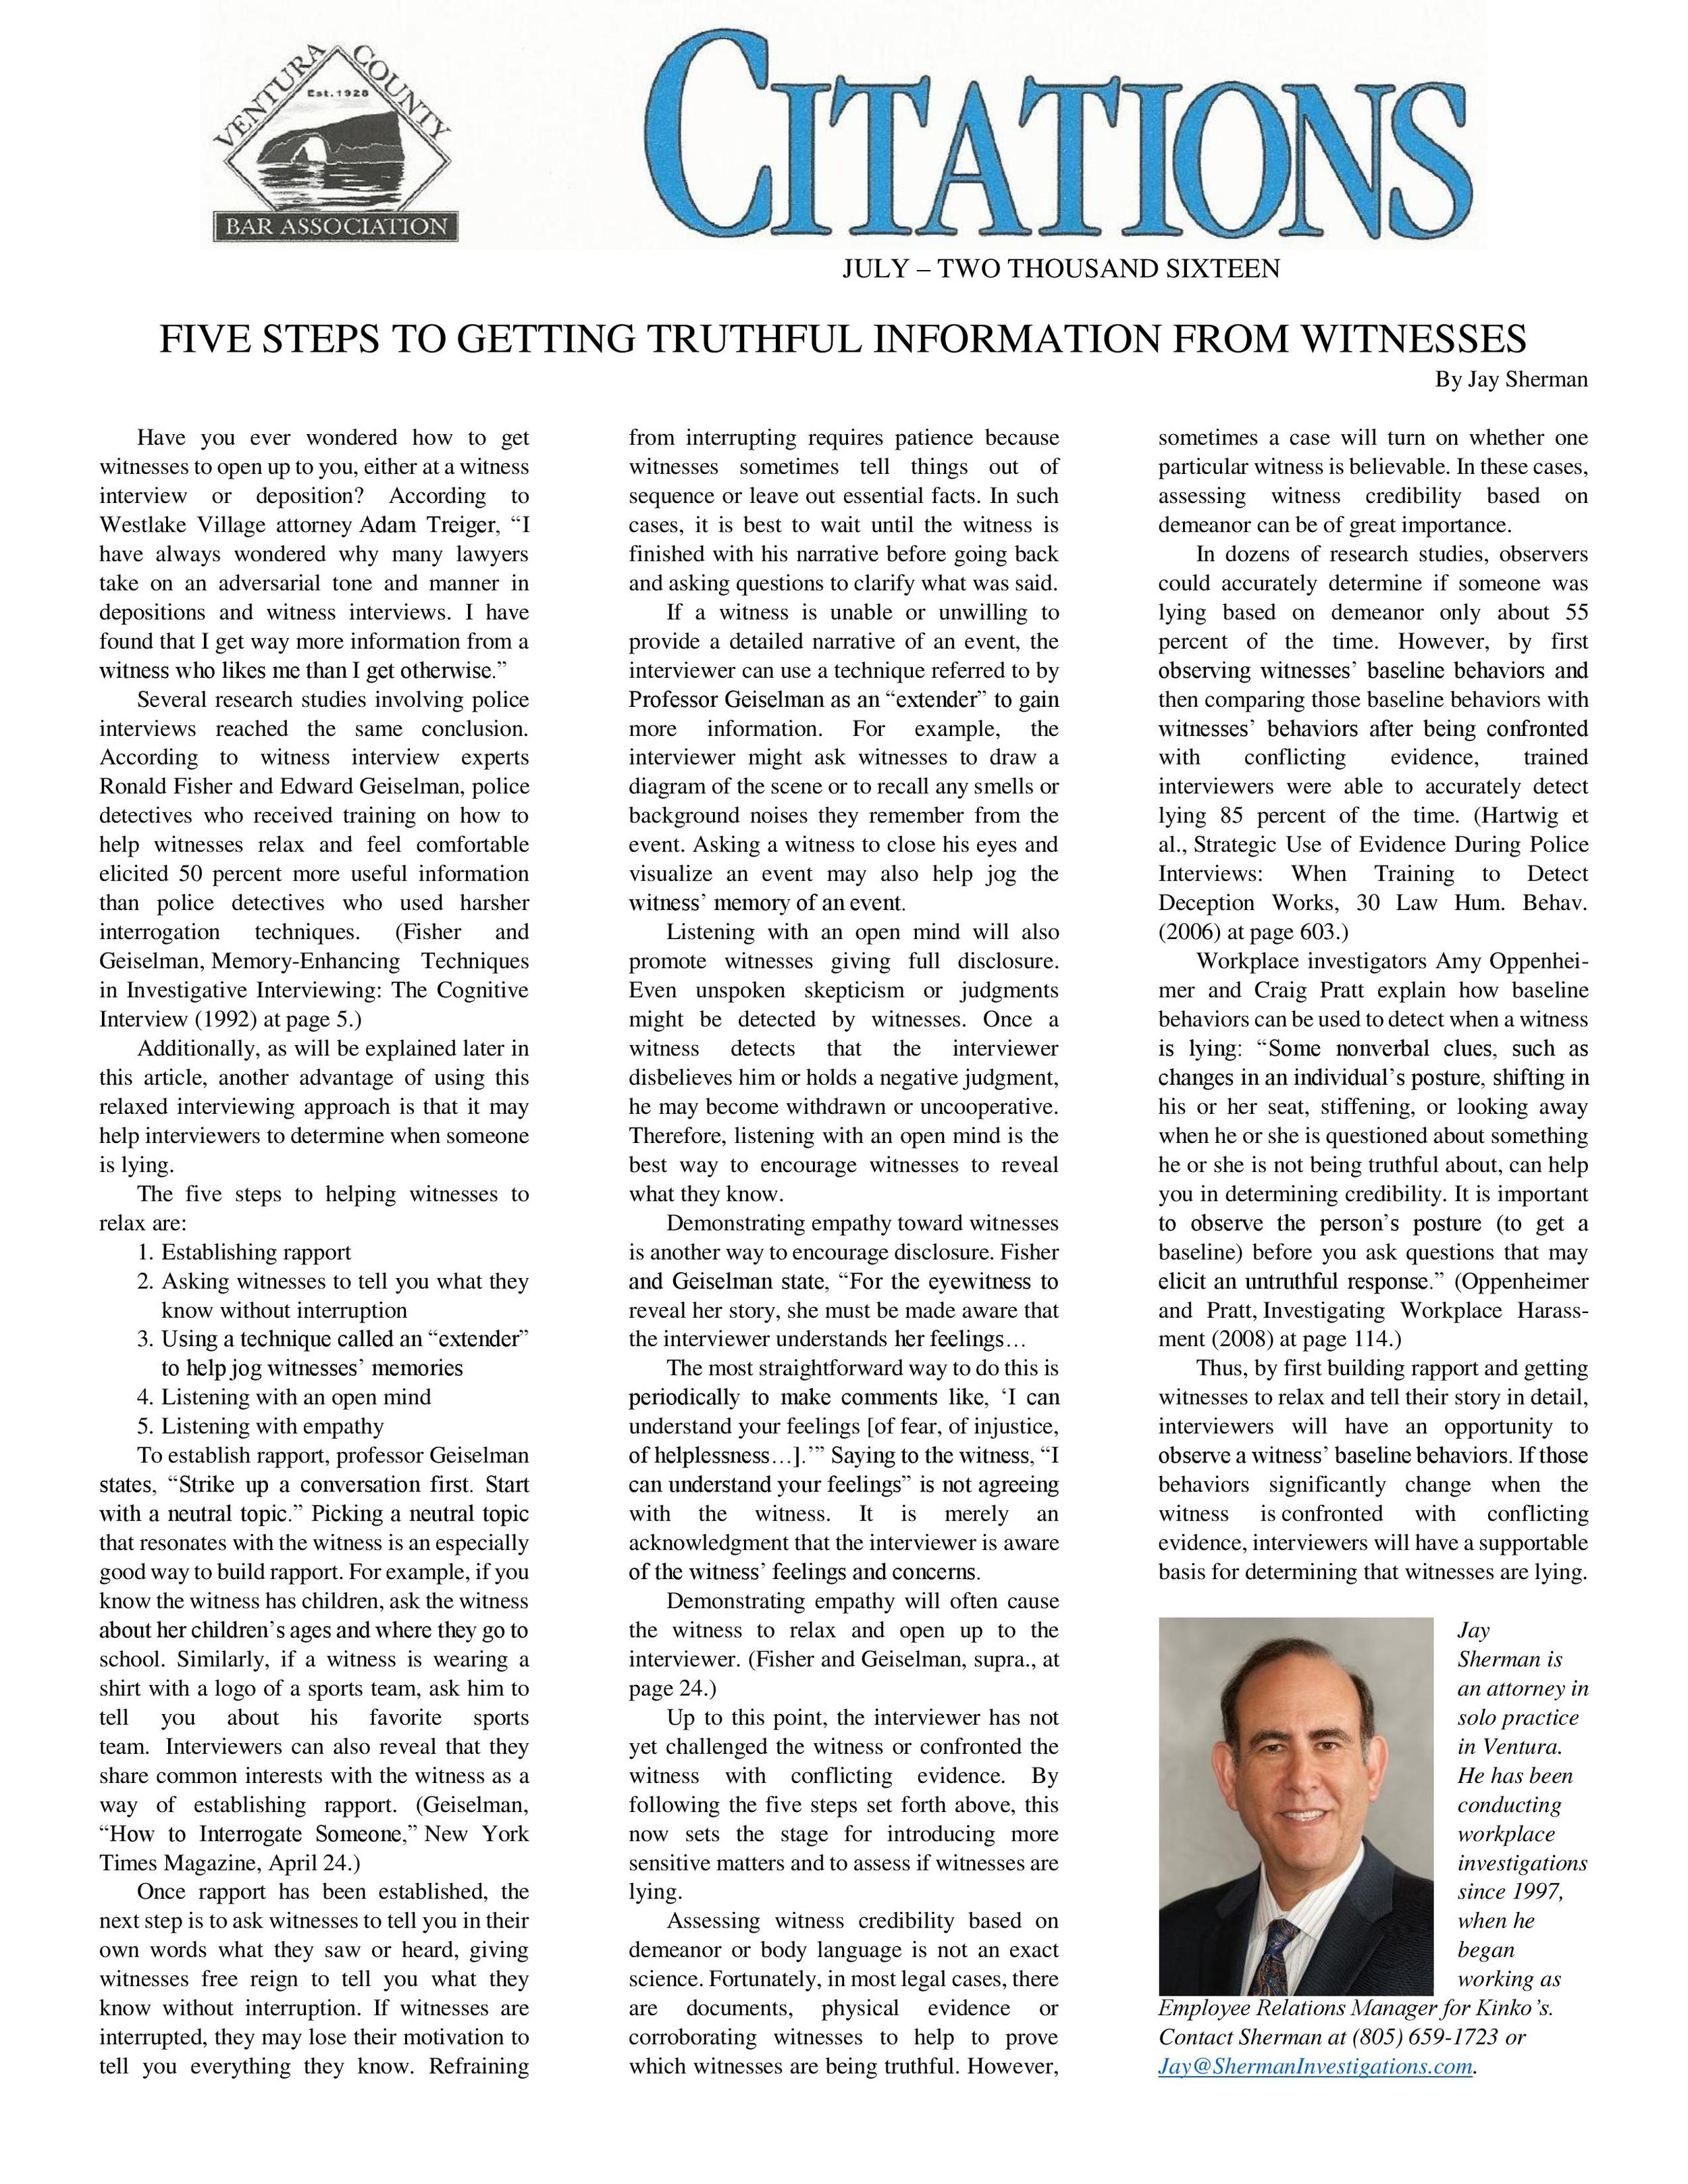 Our Client, Attorney Jay Sherman's OpEd, in Ventura Bar